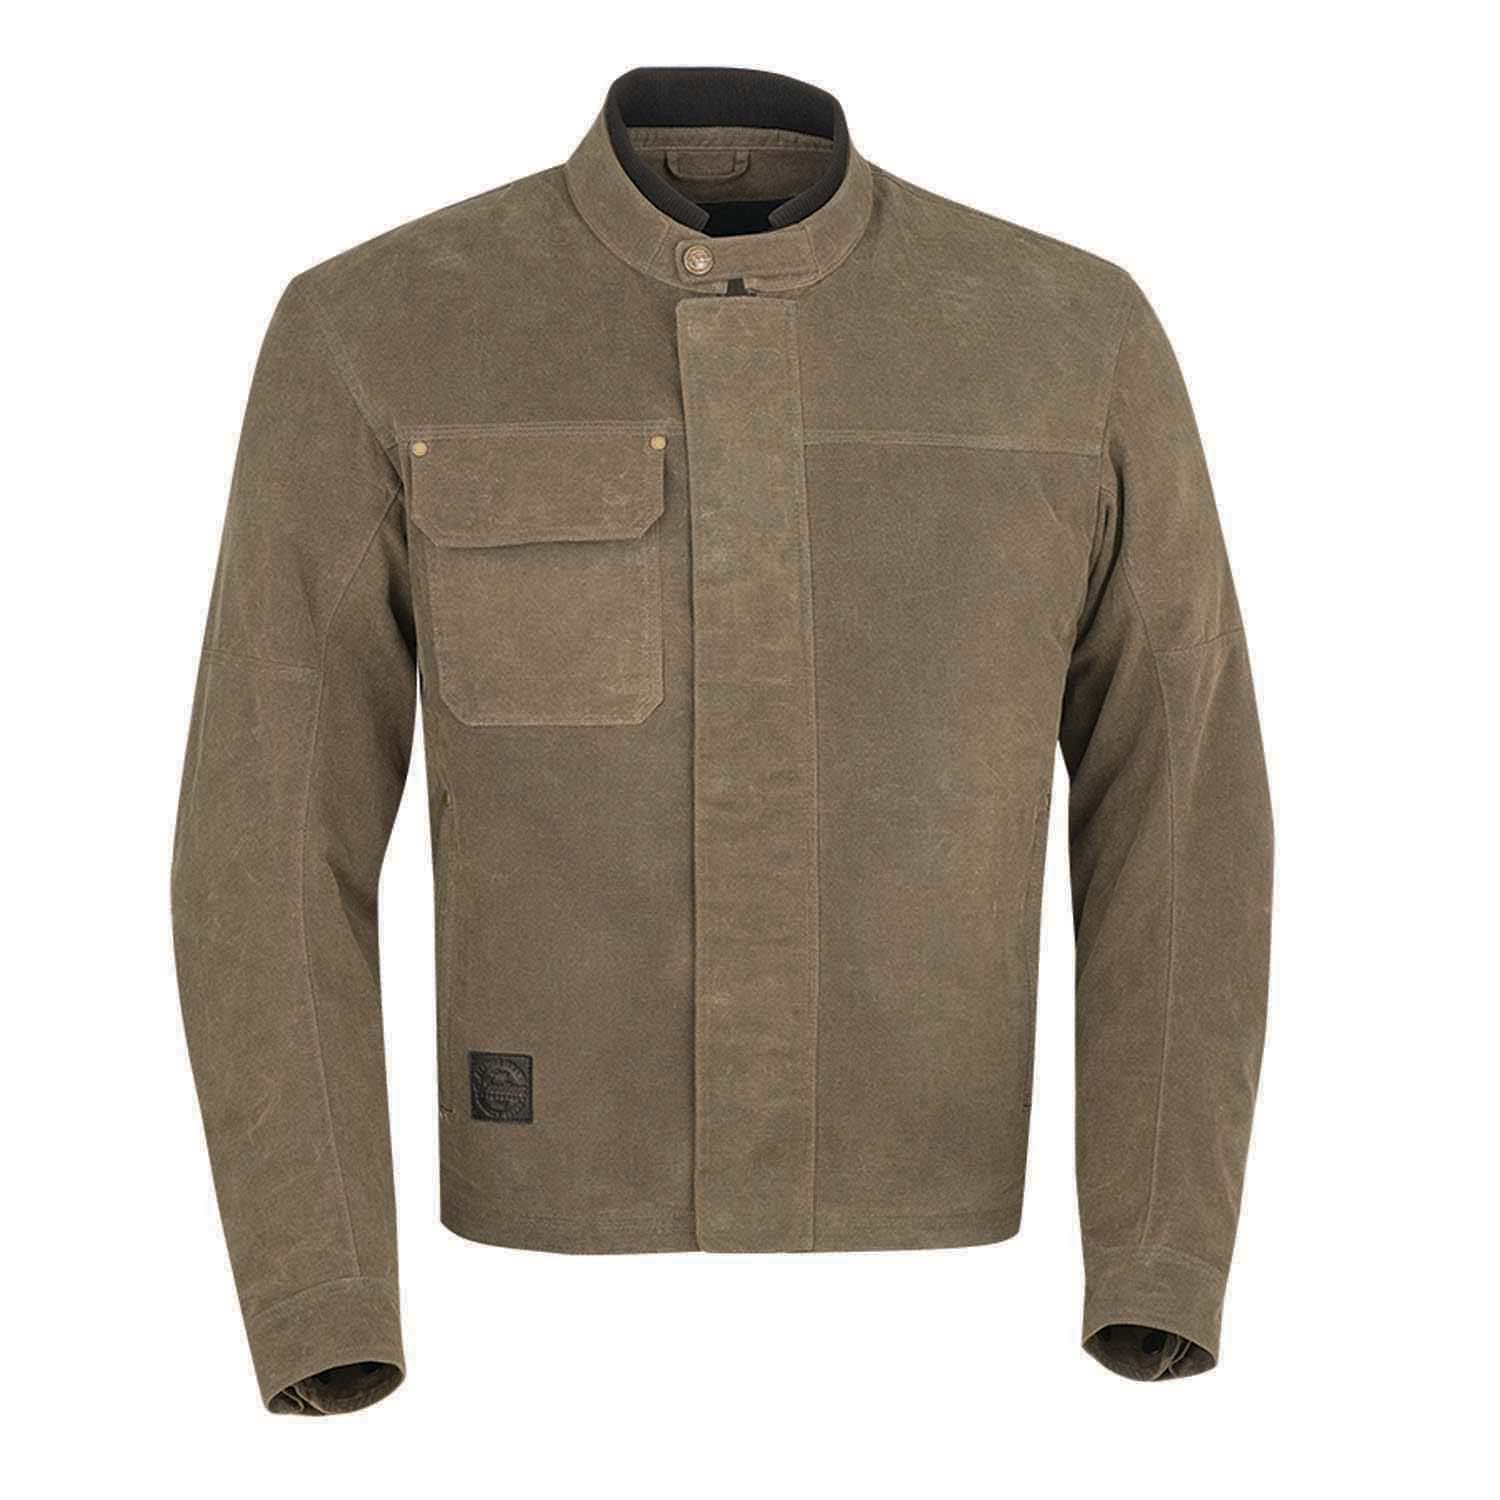 miniature 8 - Indian Motorcycle Men's Waxed Cotton Riding Jacket, Olive